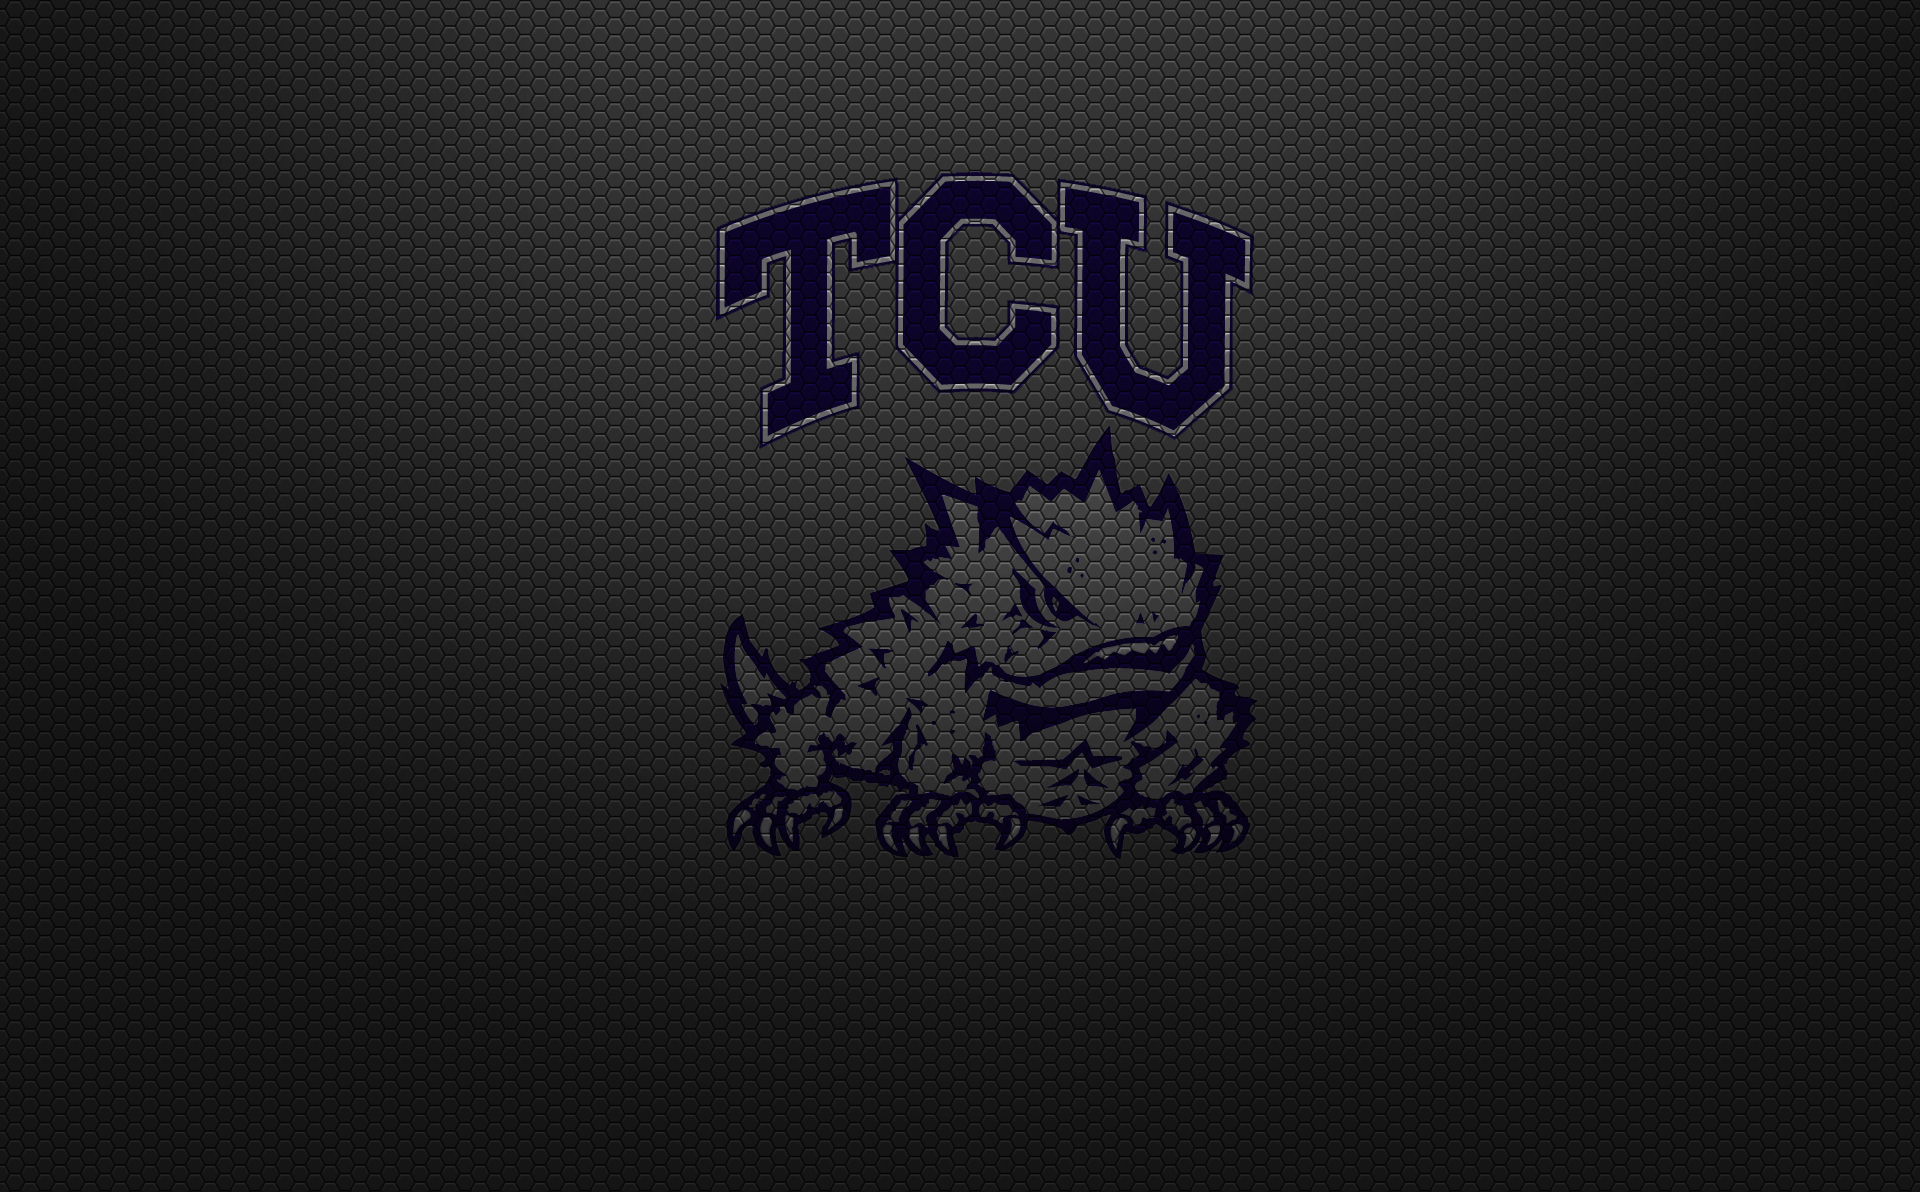 Wallpaperwiki Tcu Wallpaper HD PIC WPD00618